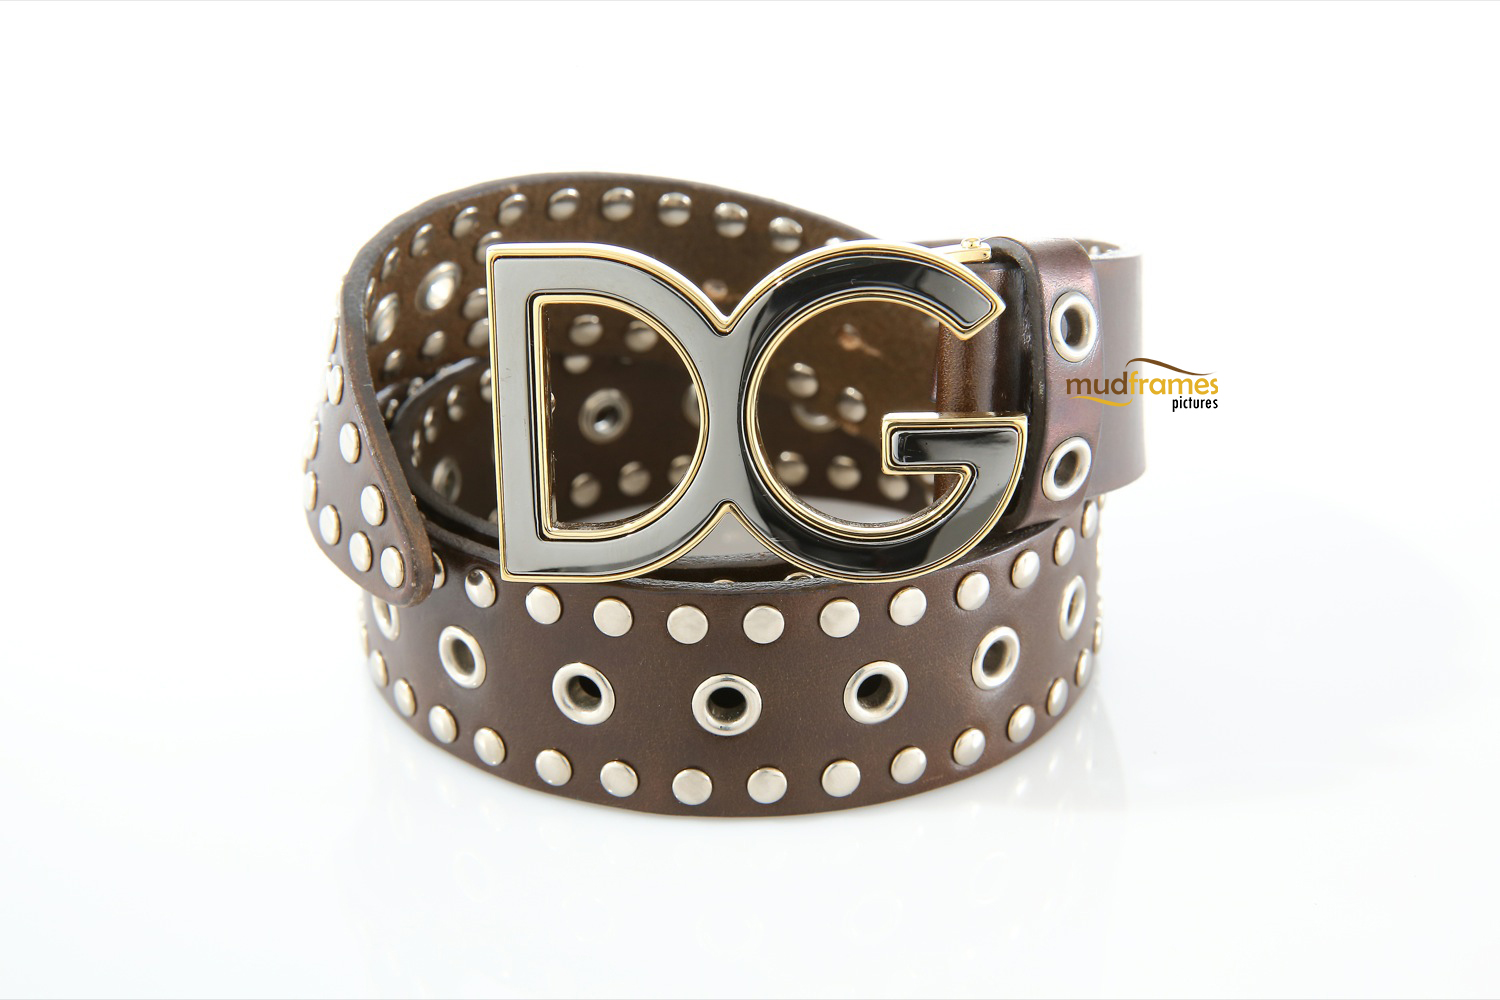 Dark brown Dolce & Gabbana belt on white background